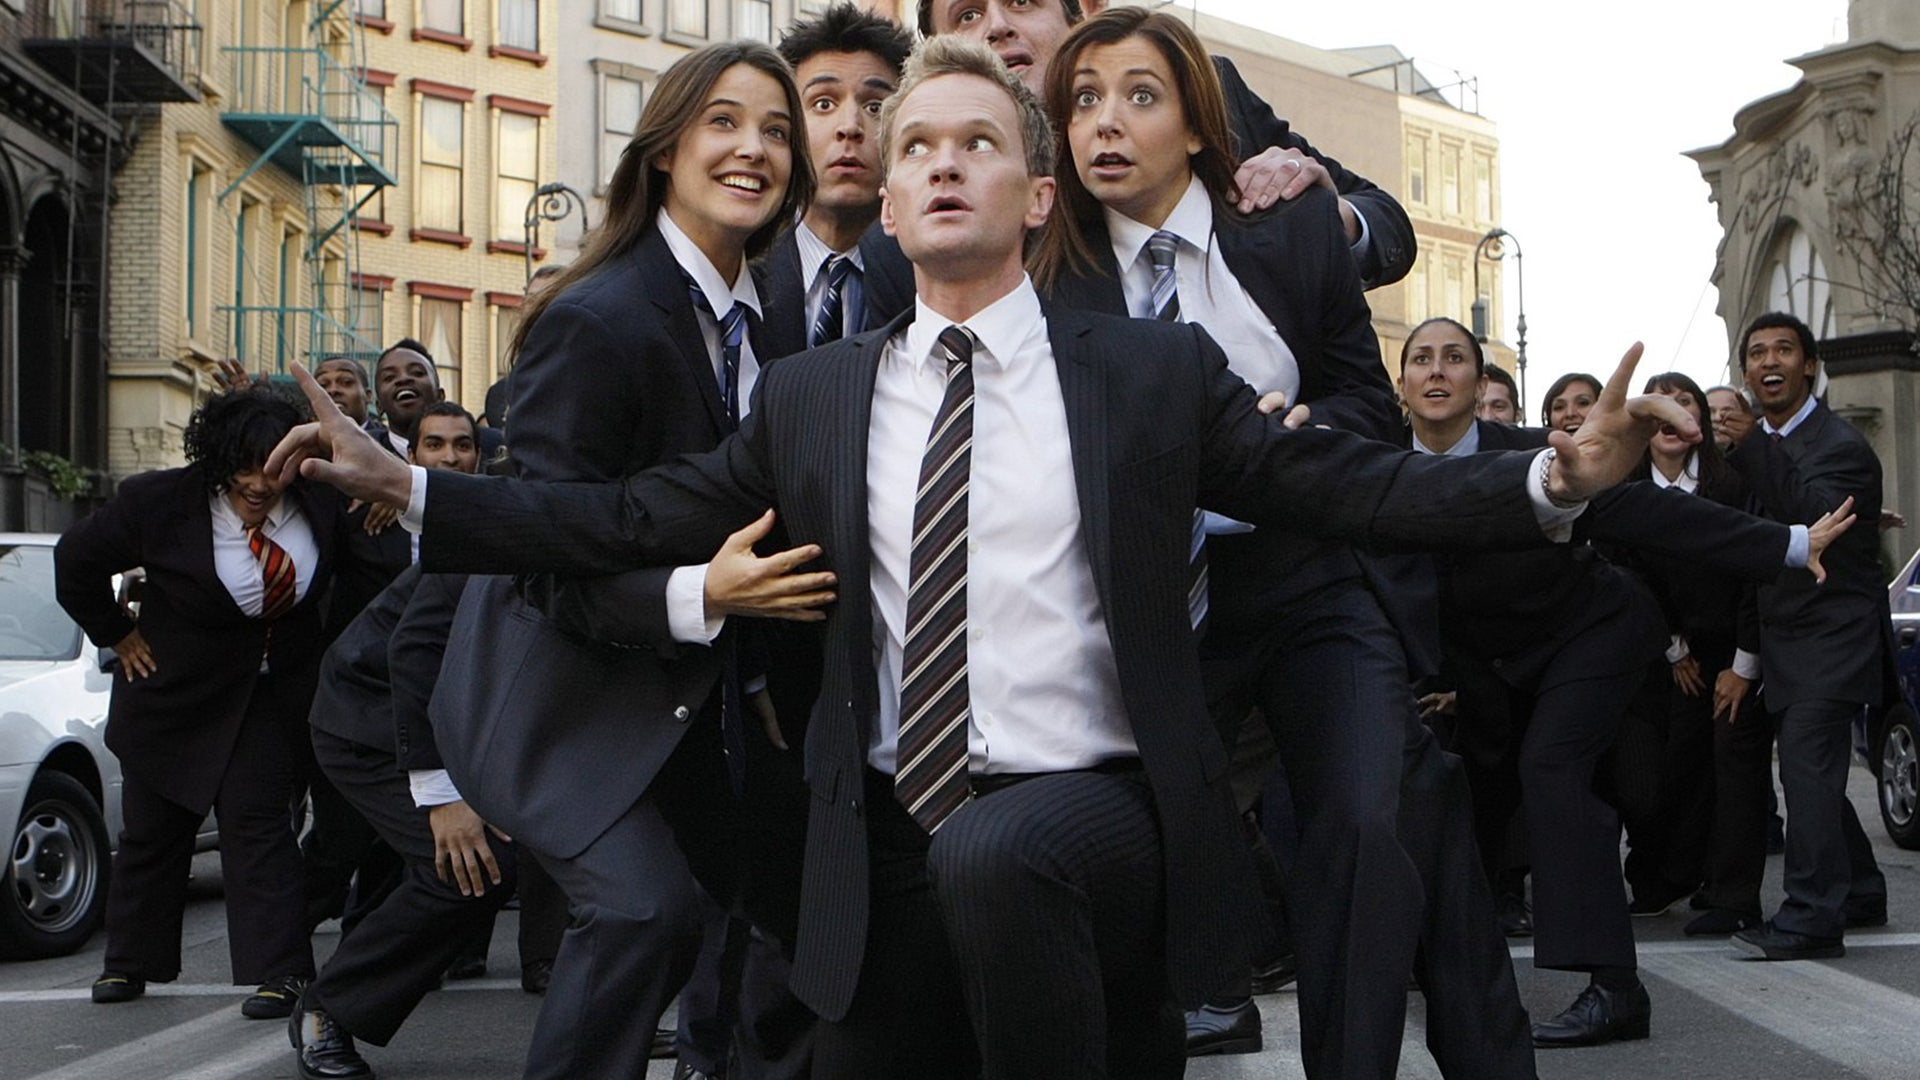 Cobie Smulders, Josh Radnor, Jason Segel, Alyson Hannigan and Neil Patrick Harris, How I Met Your Mother